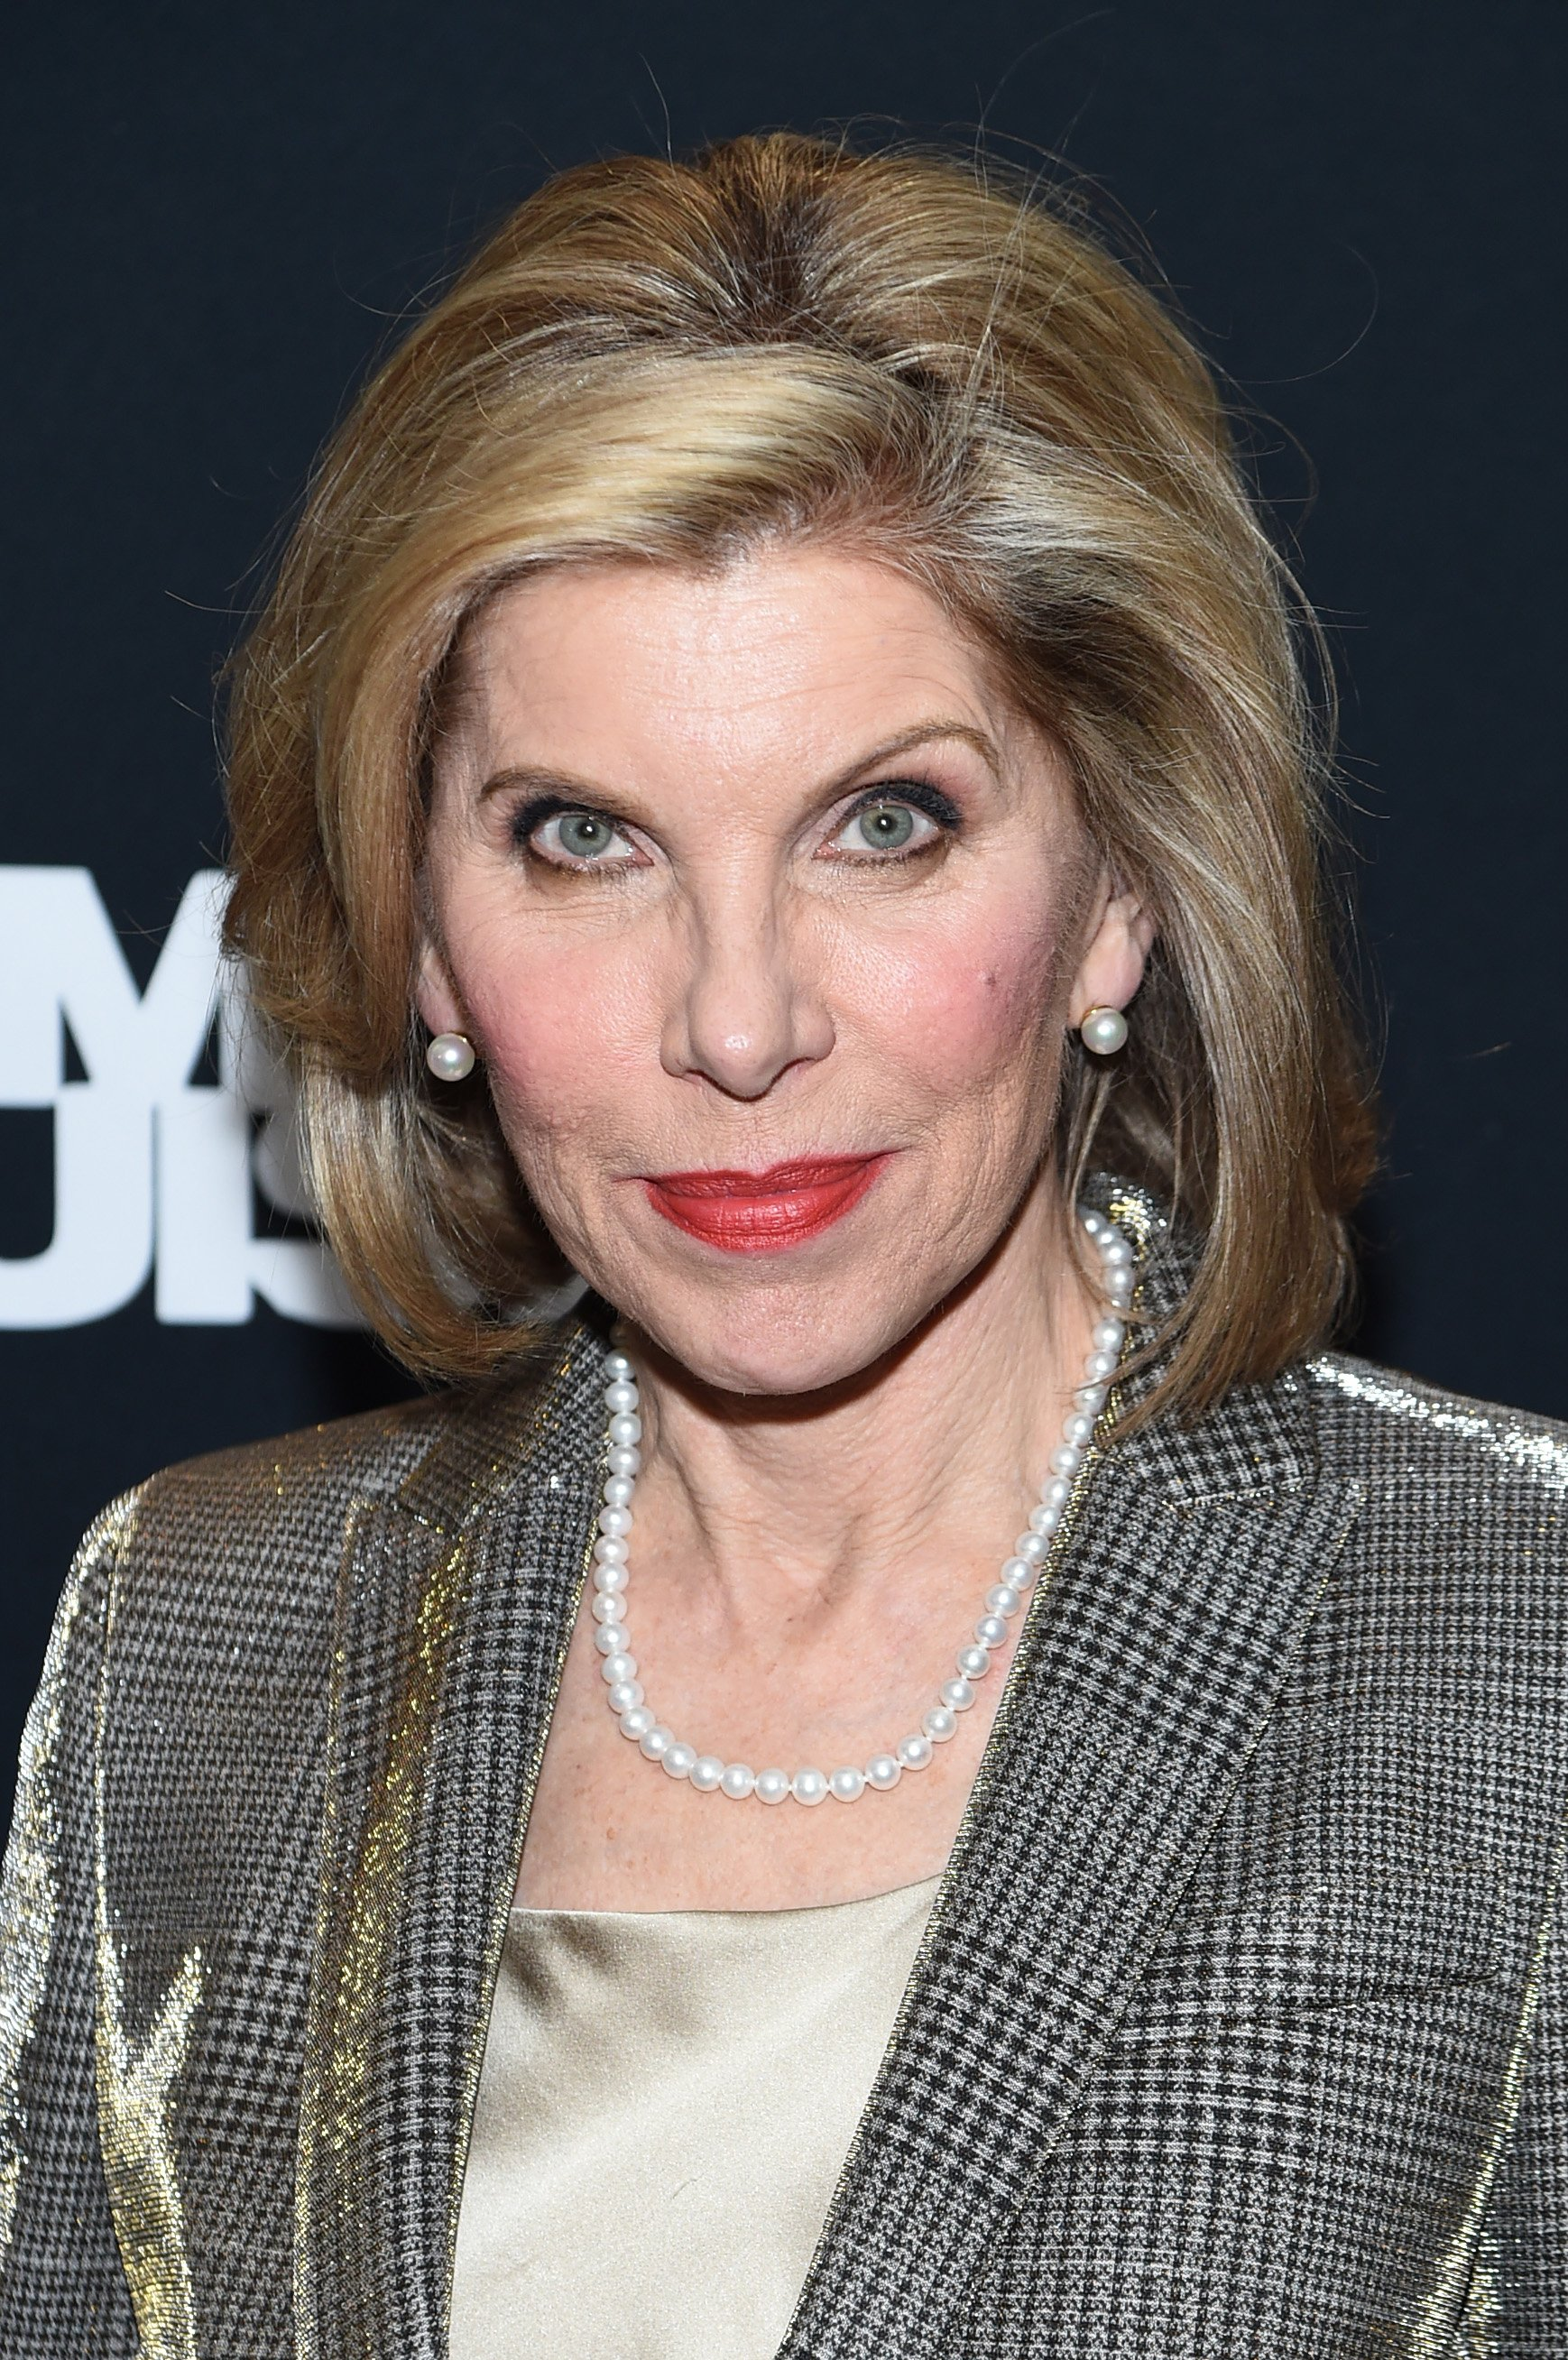 Christine Baranski on January 28, 2020 in New York City | Source: Getty Images/Global Images Ukraine